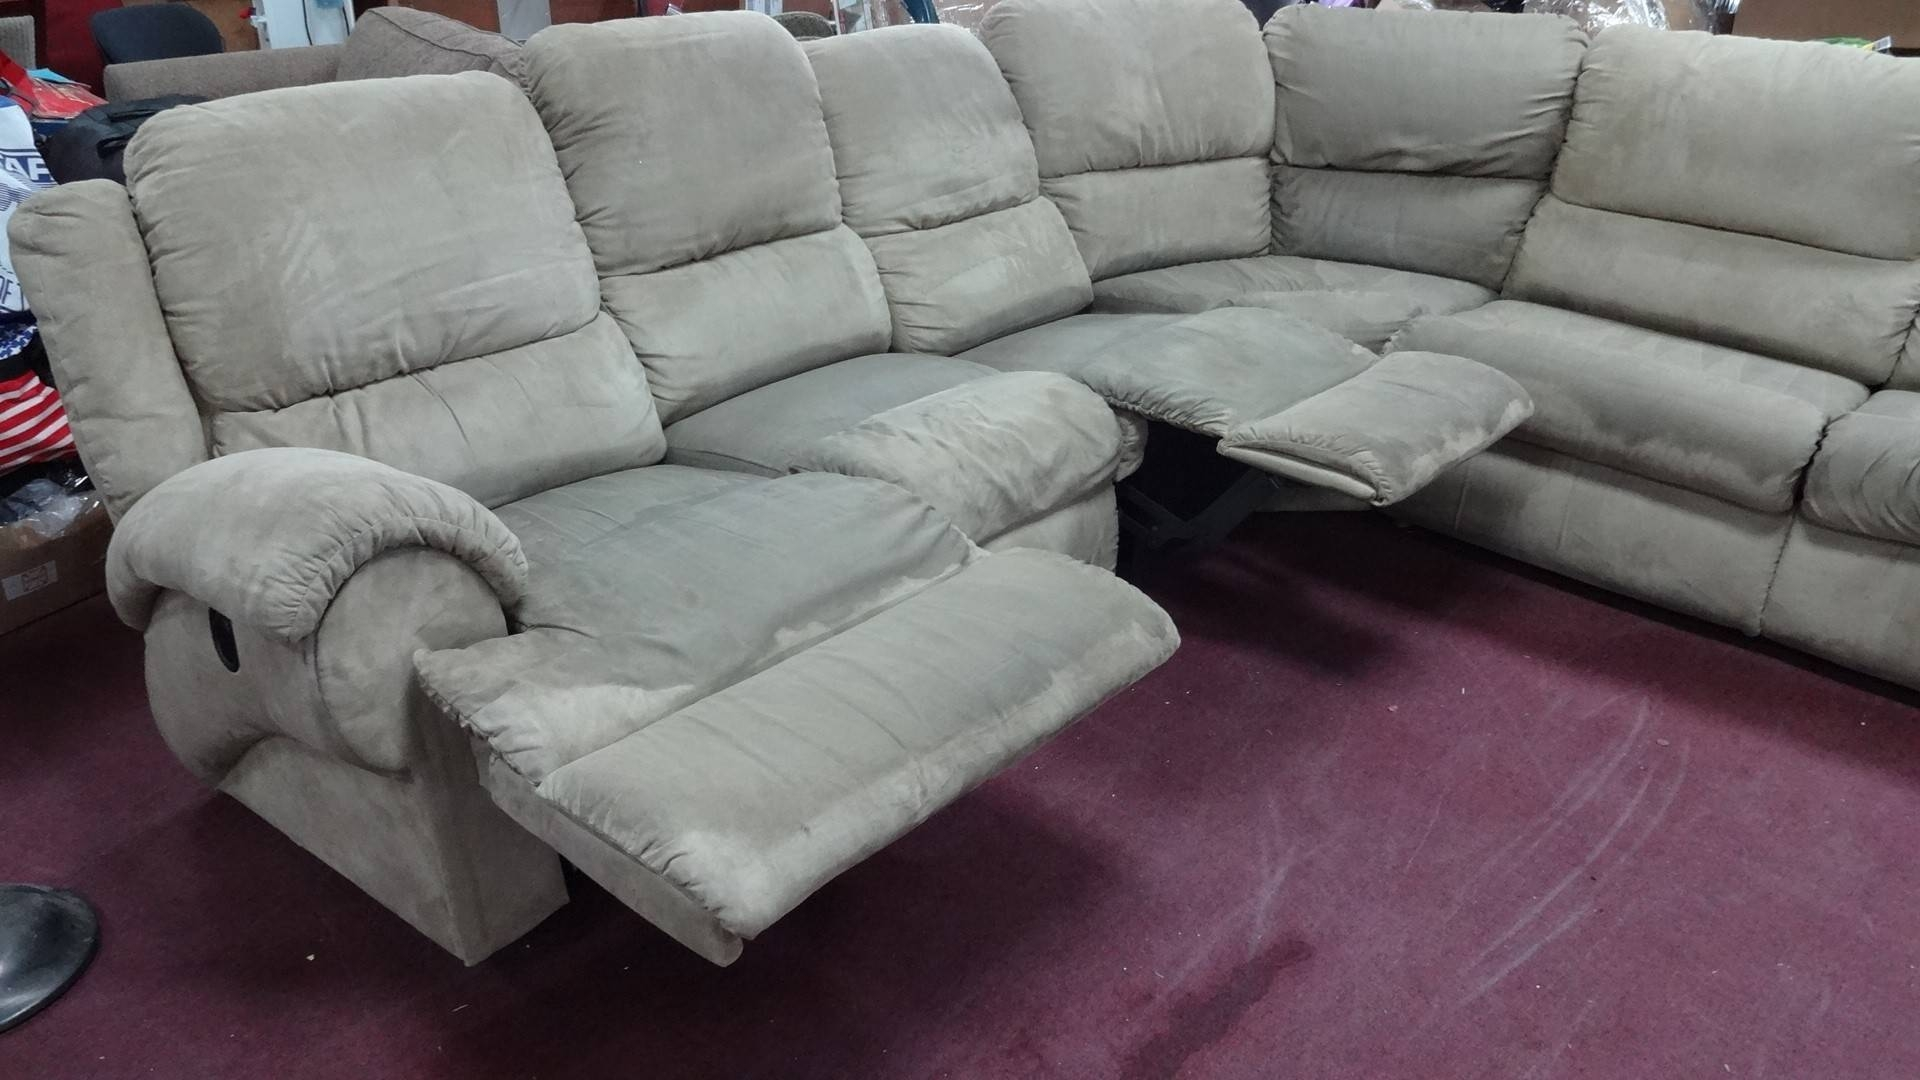 Sofas Center : Lazy Boy Sectional Sleeper Sofa Cleanupflorida Com intended for Lazyboy Sectional Sofas (Image 22 of 25)